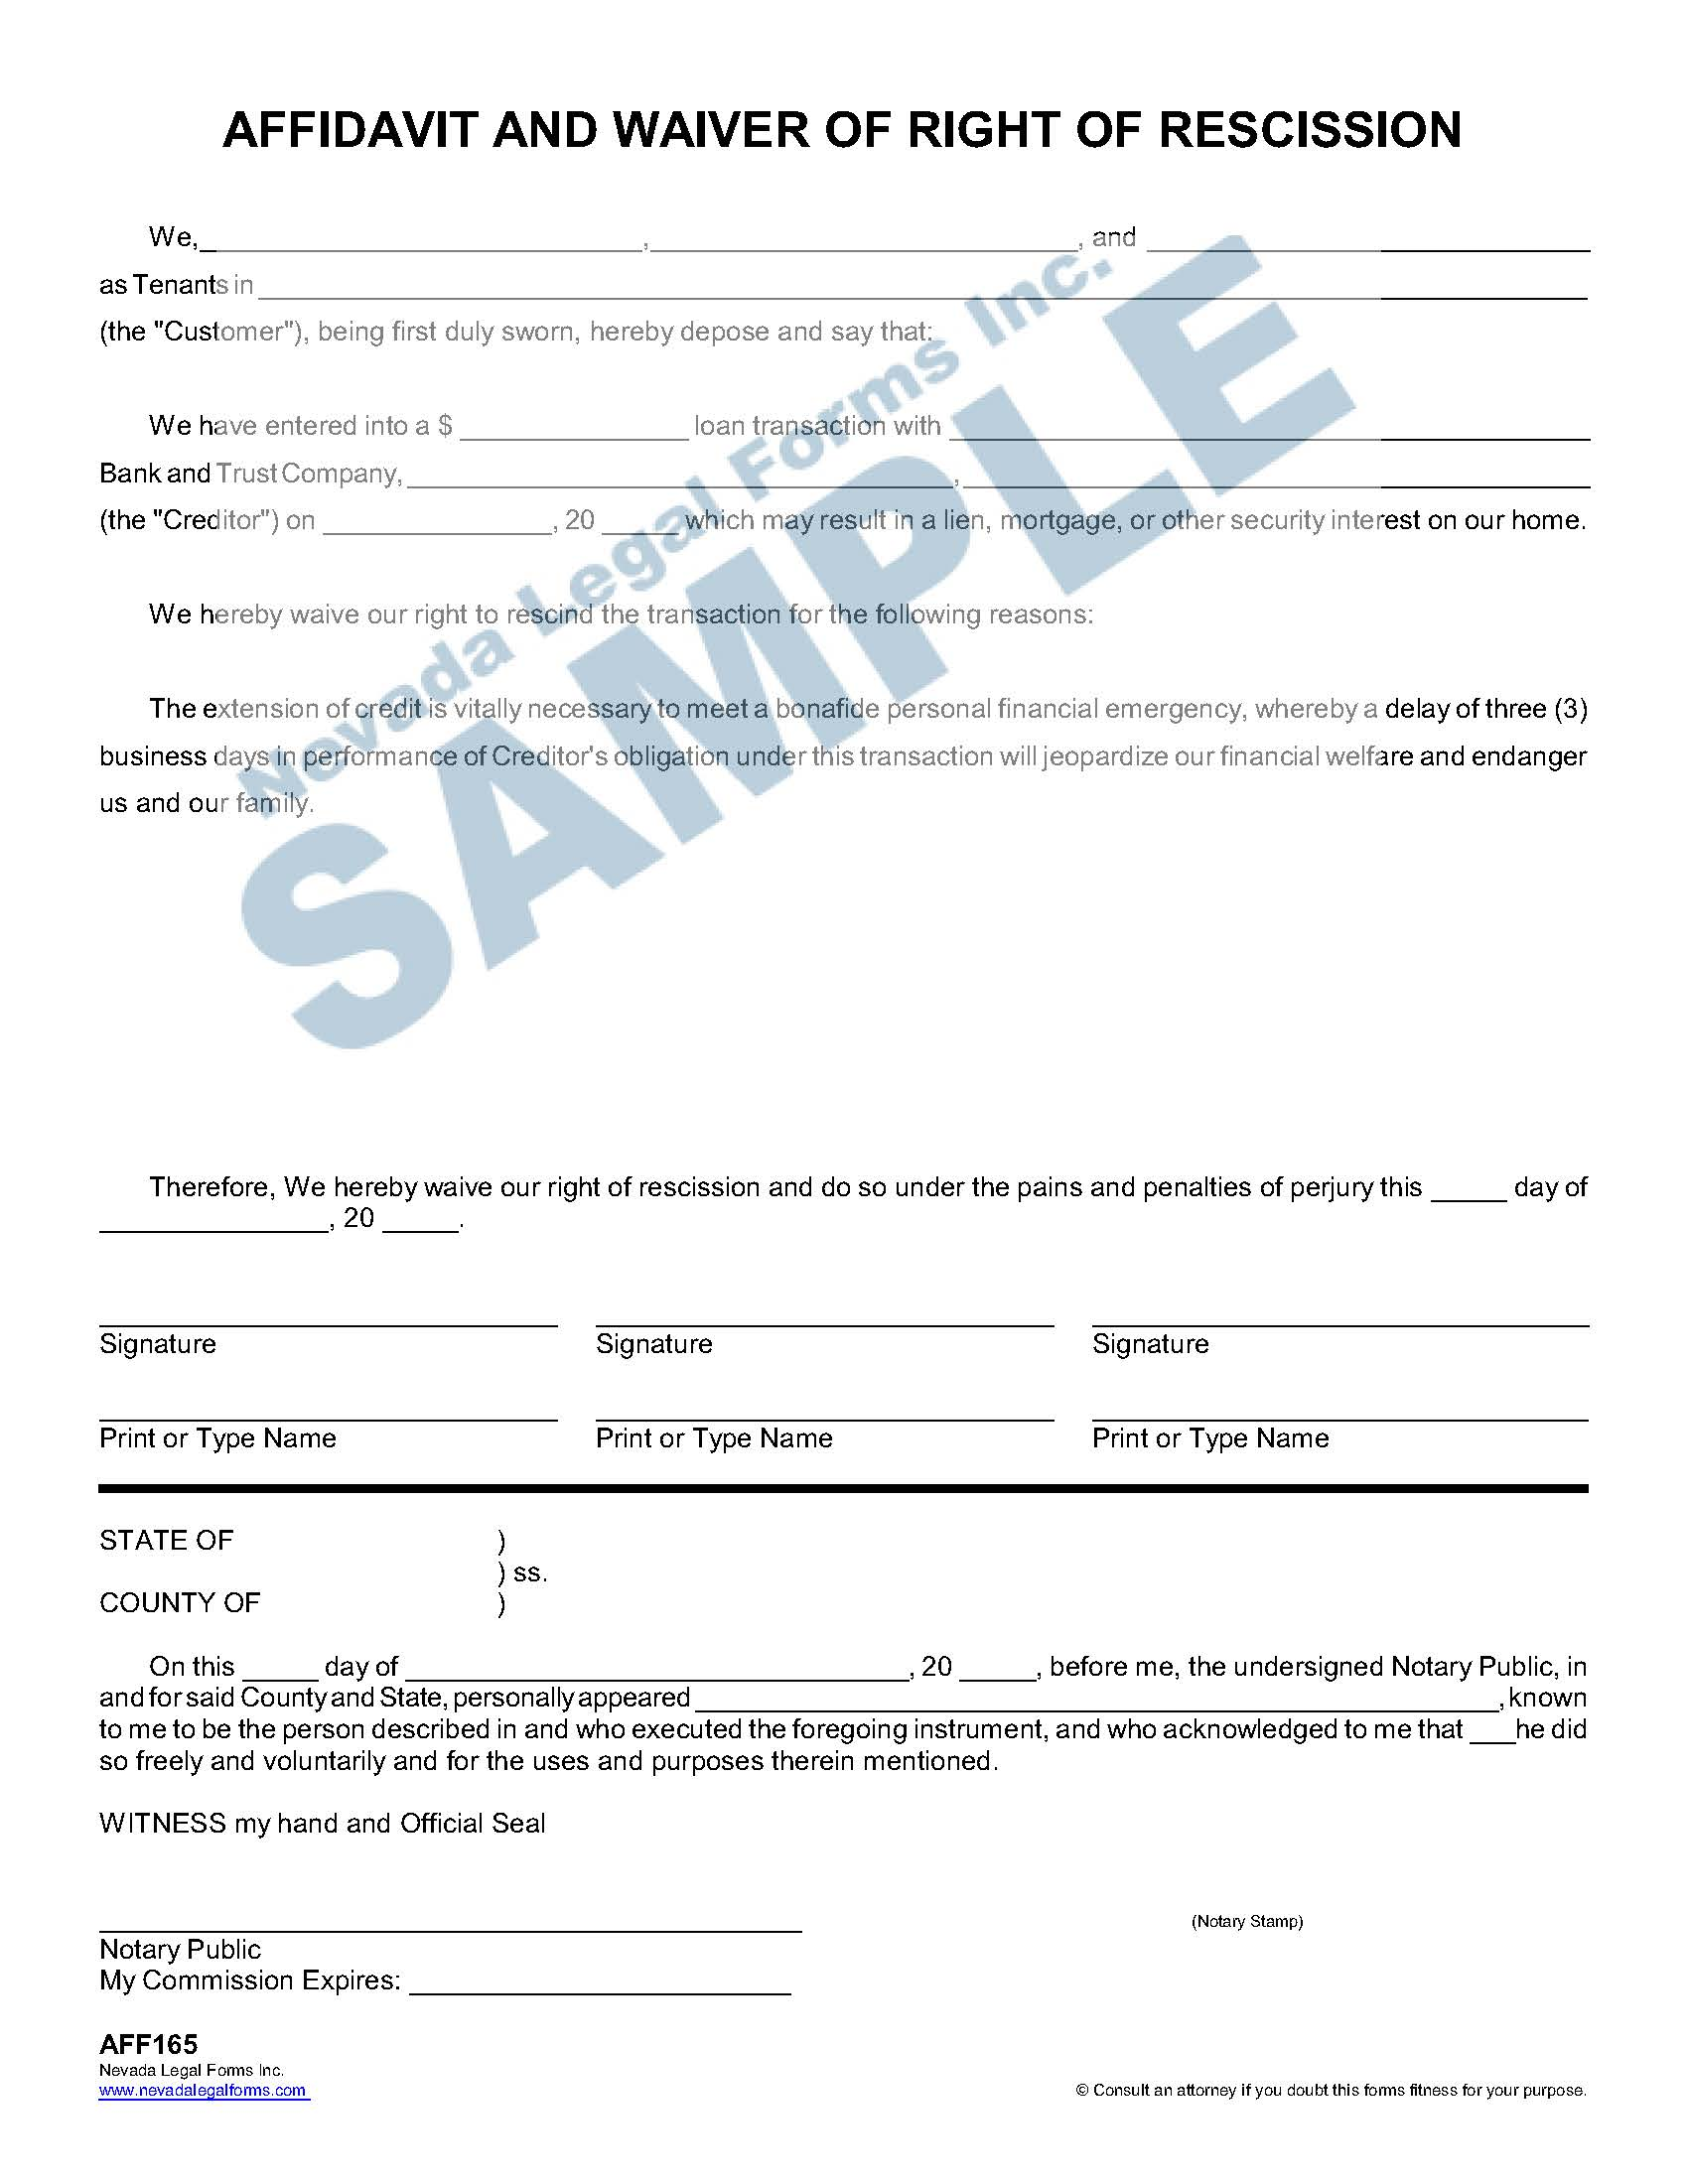 Affidavit And Waiver Of Right Of Rescission